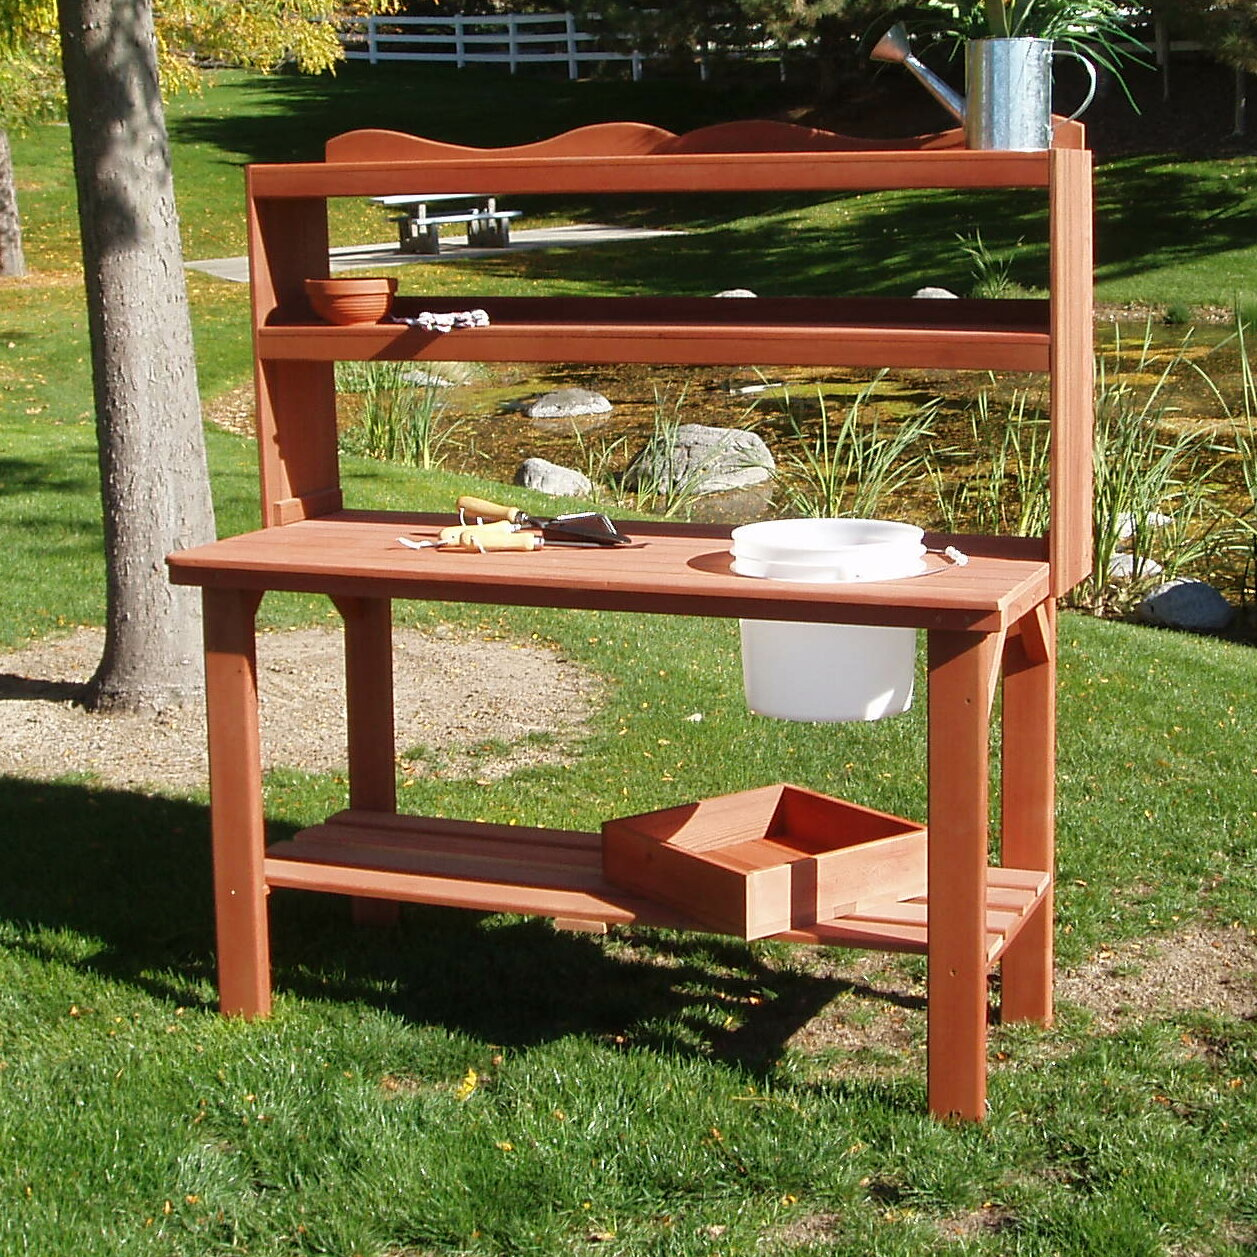 Garden Potting Bench: WoodCountry Master Potting Bench & Reviews